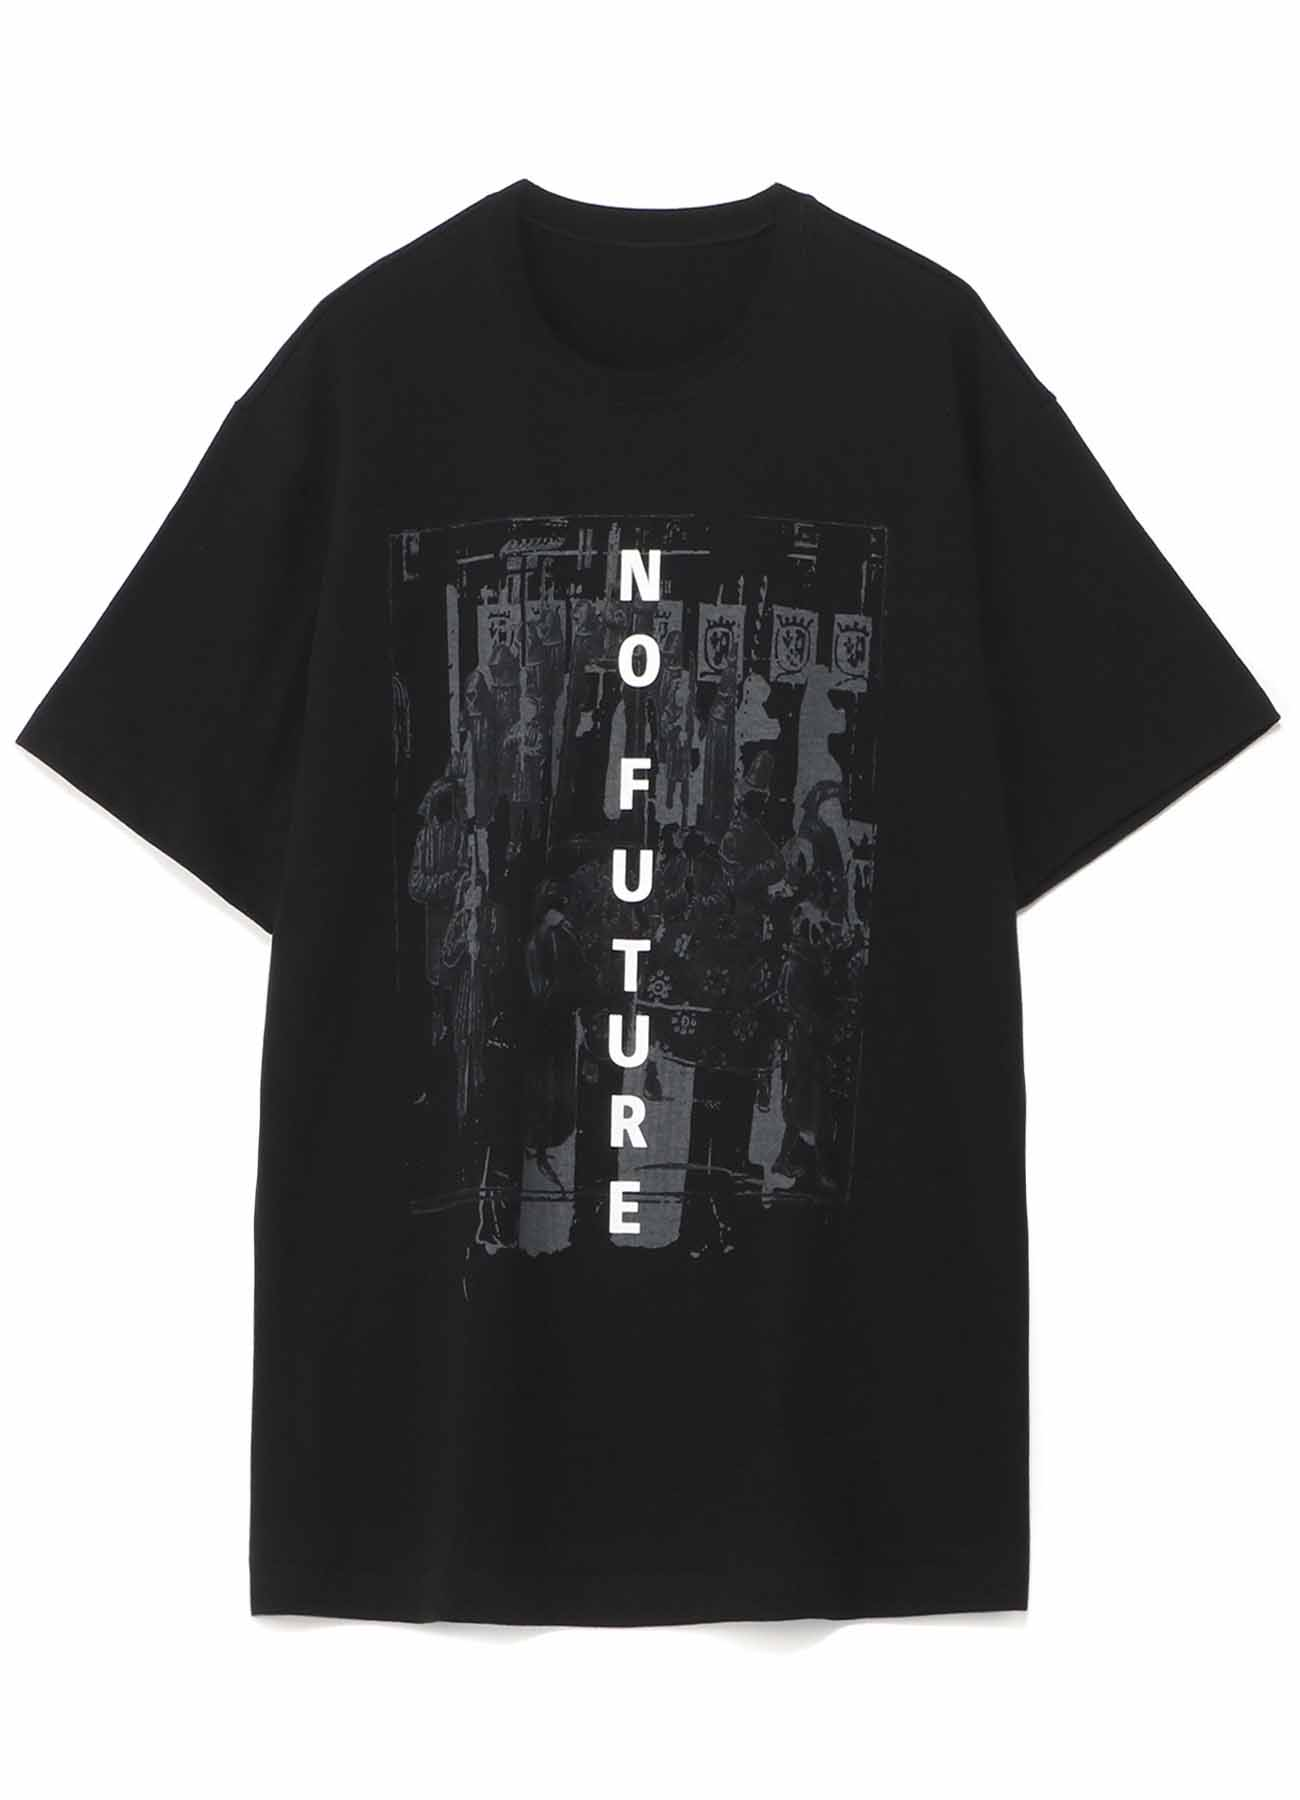 20/CottonJersey [NO FUTURE] T-Shirt